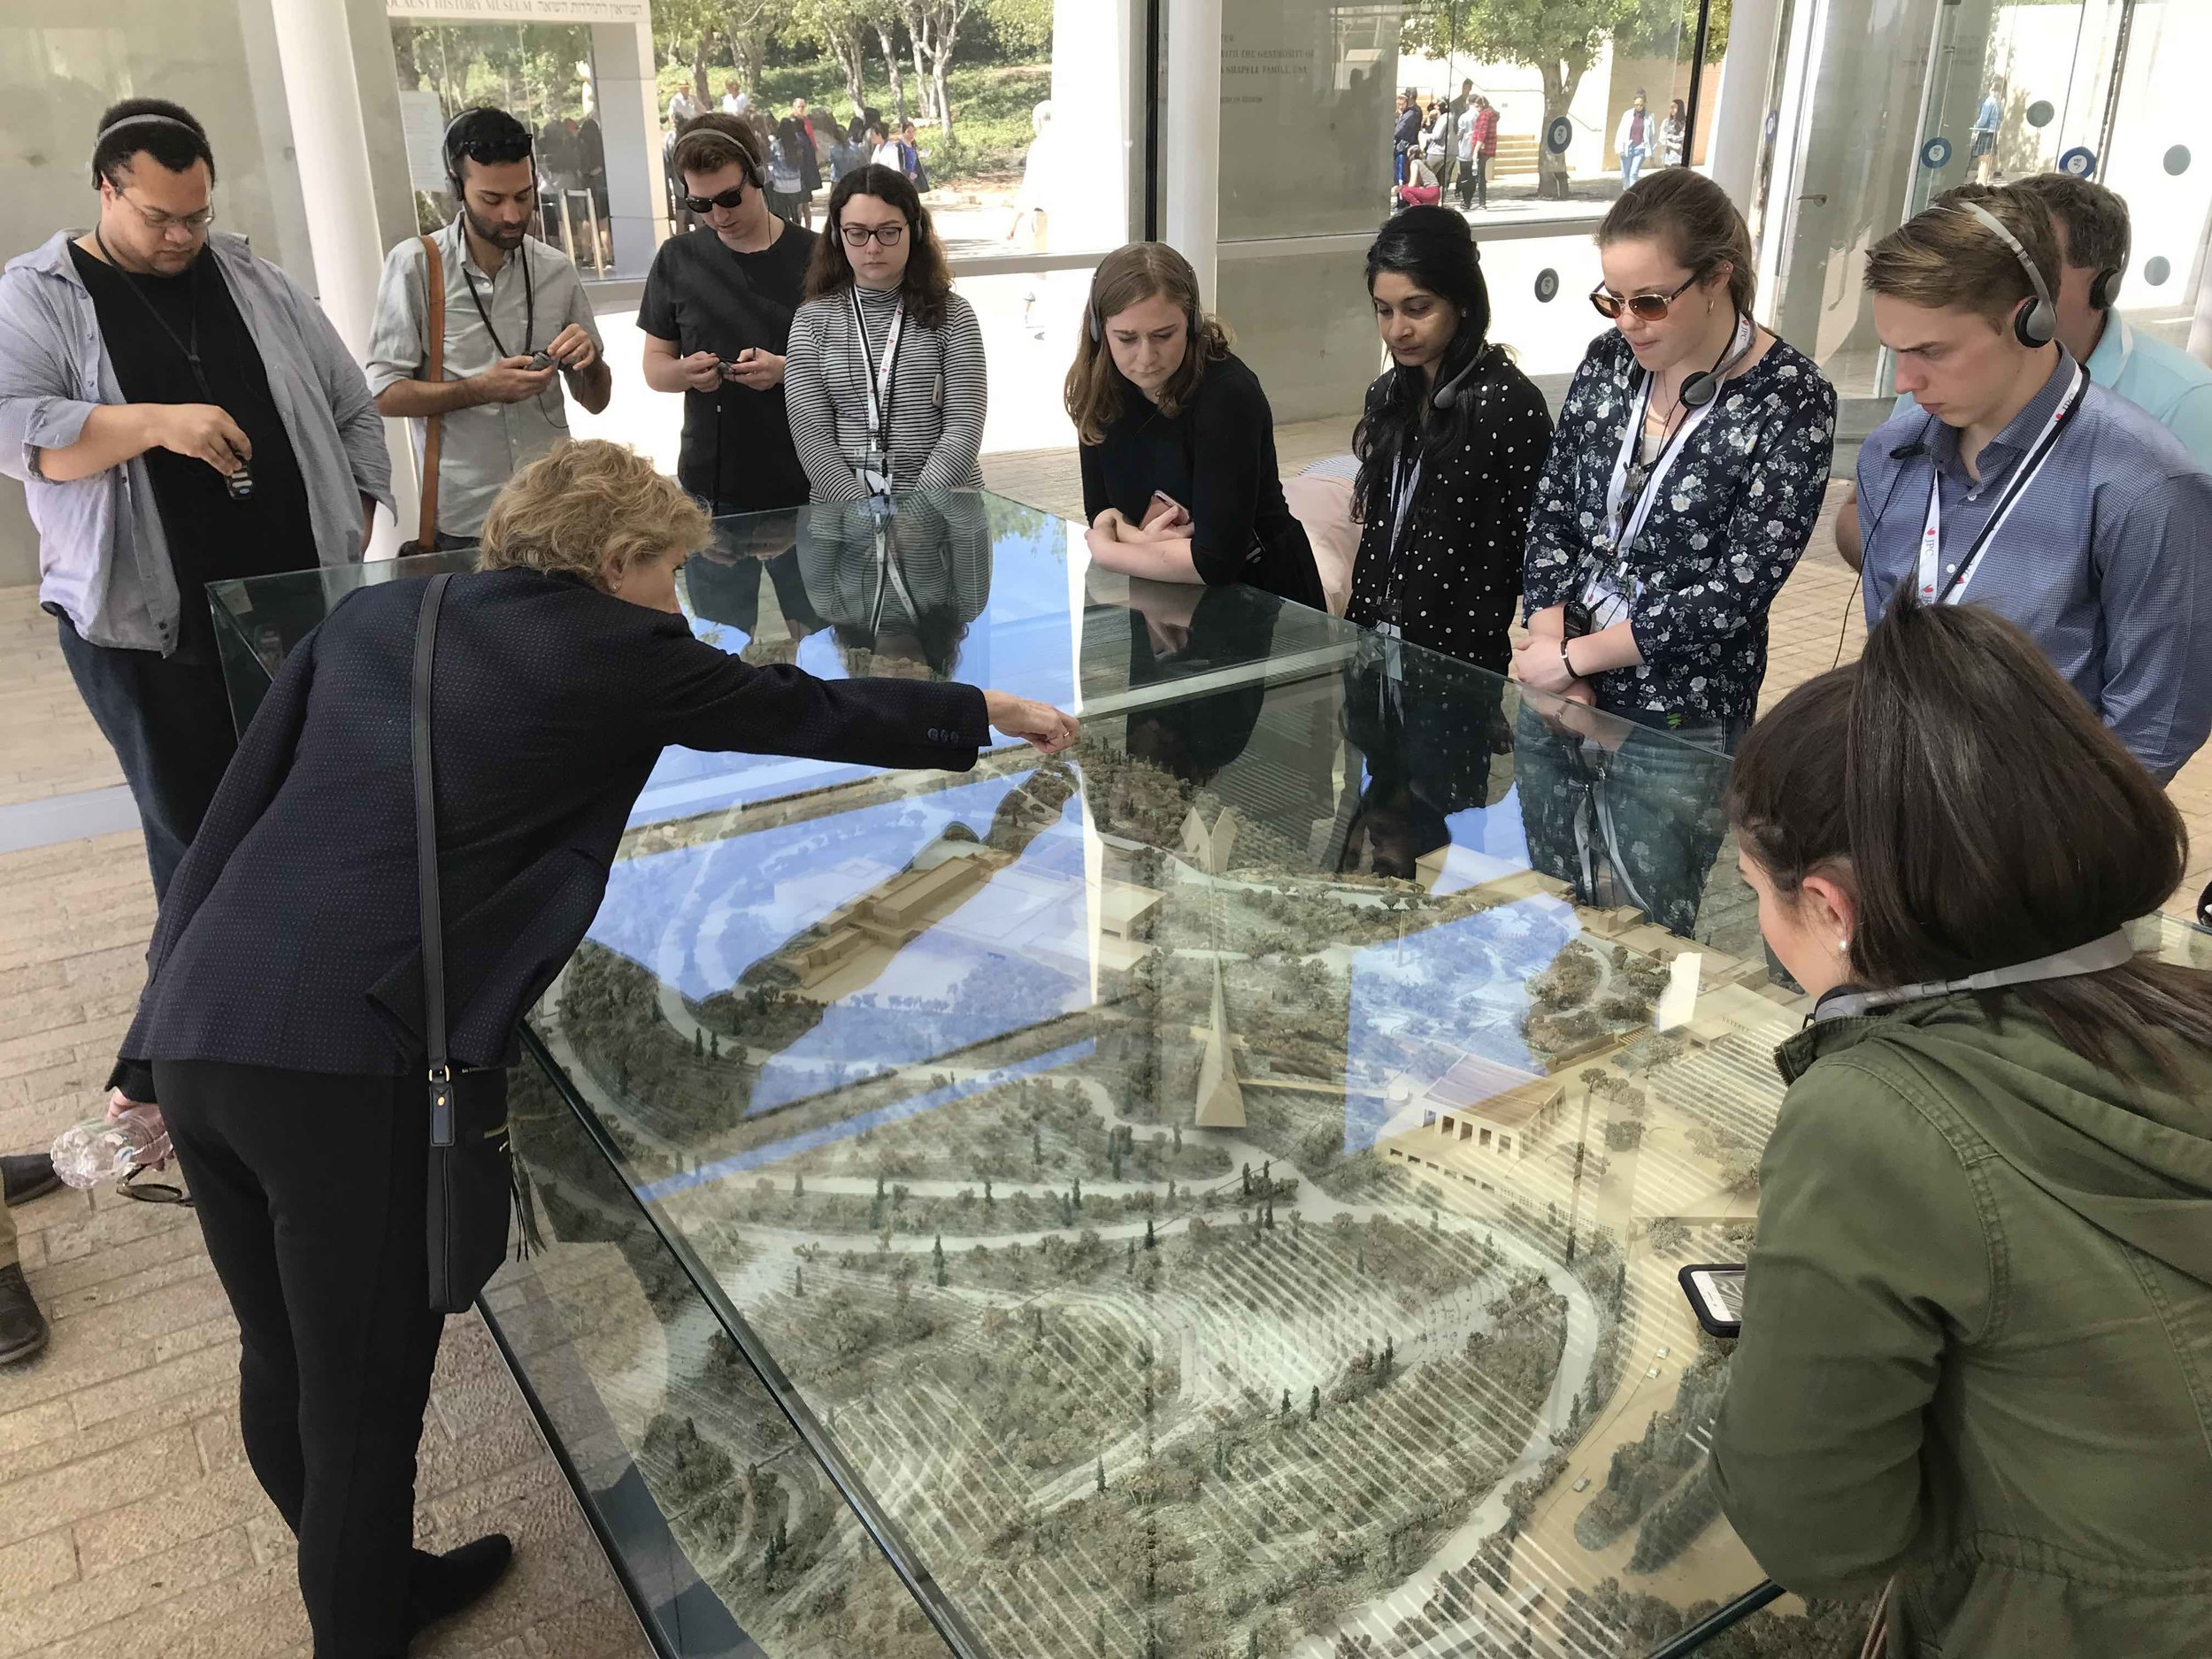 Newhouse students getting an overview of Yad Vashem, the Israeli Holocaust museum.